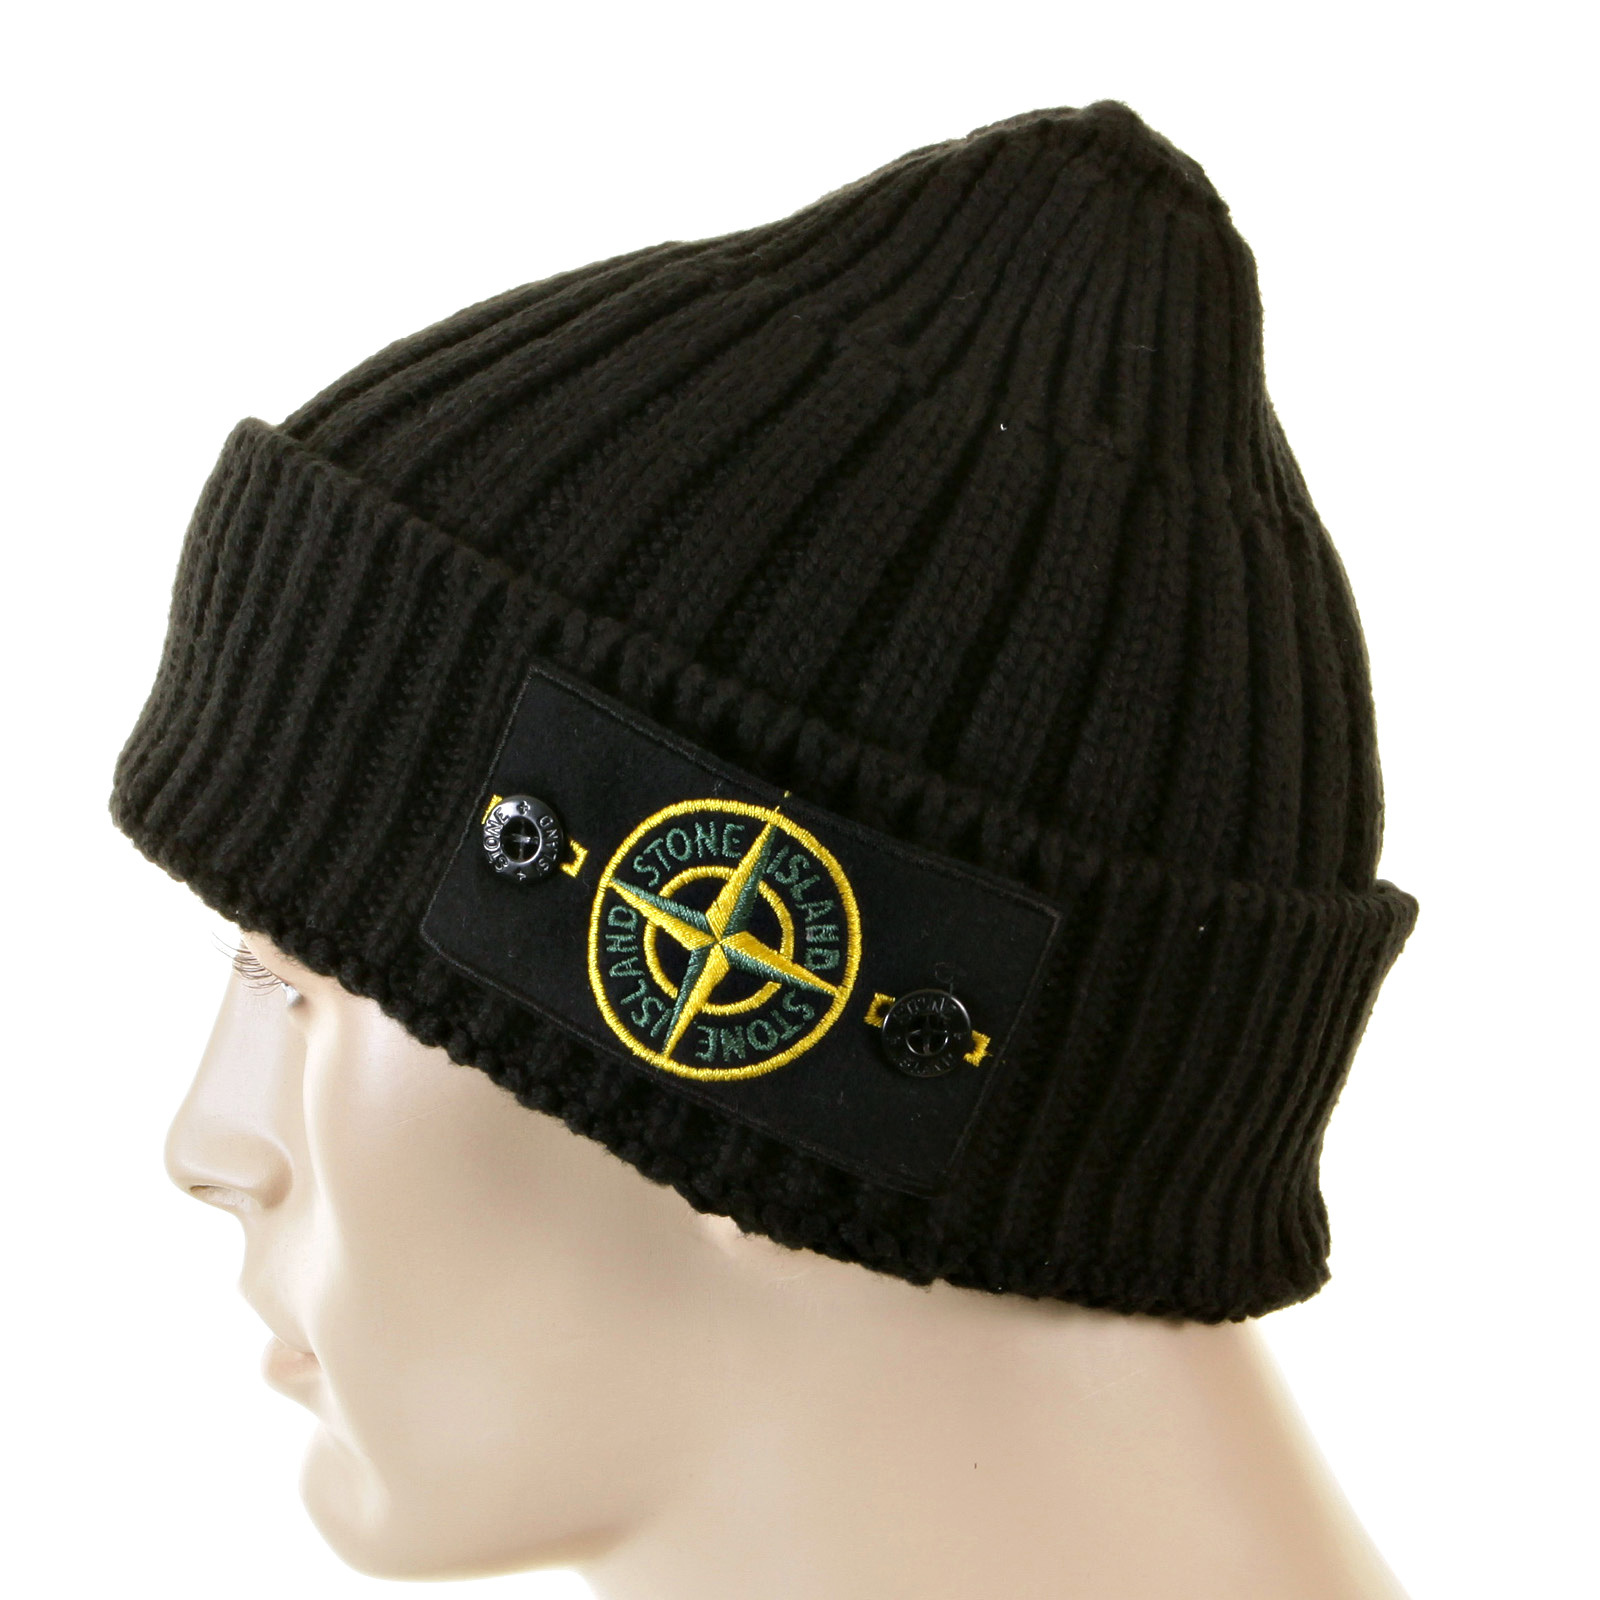 Stone Island Beanie Black roll beanie hat 5515N01D5 SI2180 at Togged ... c1ea8bd681b